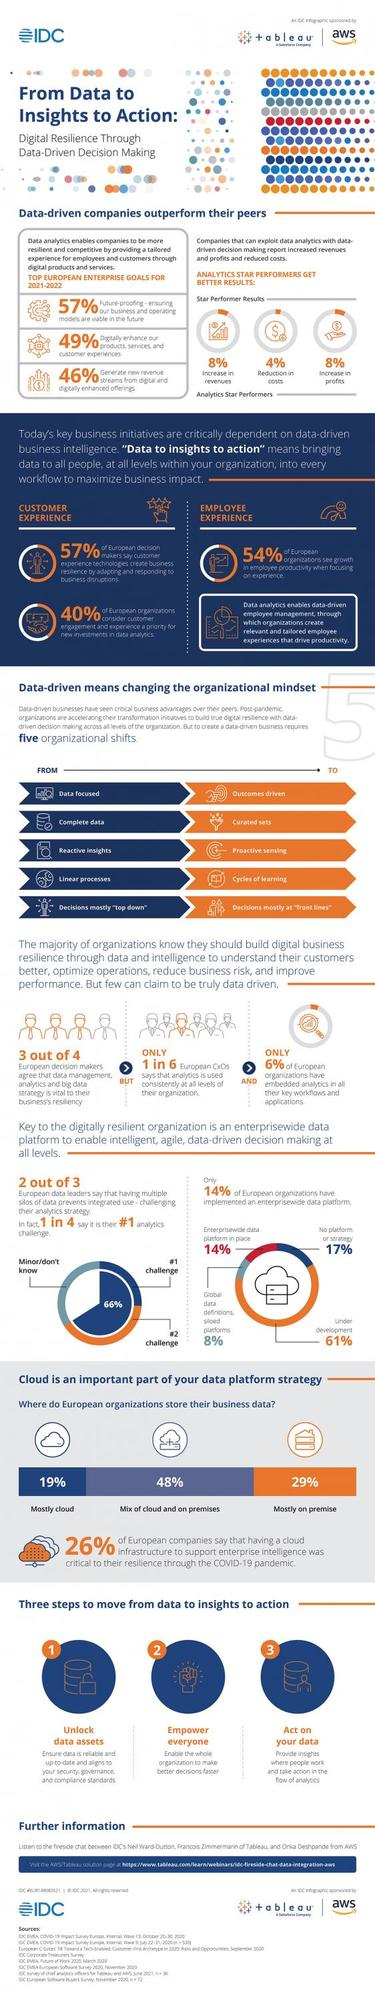 IDC Infographic From Data to Insights